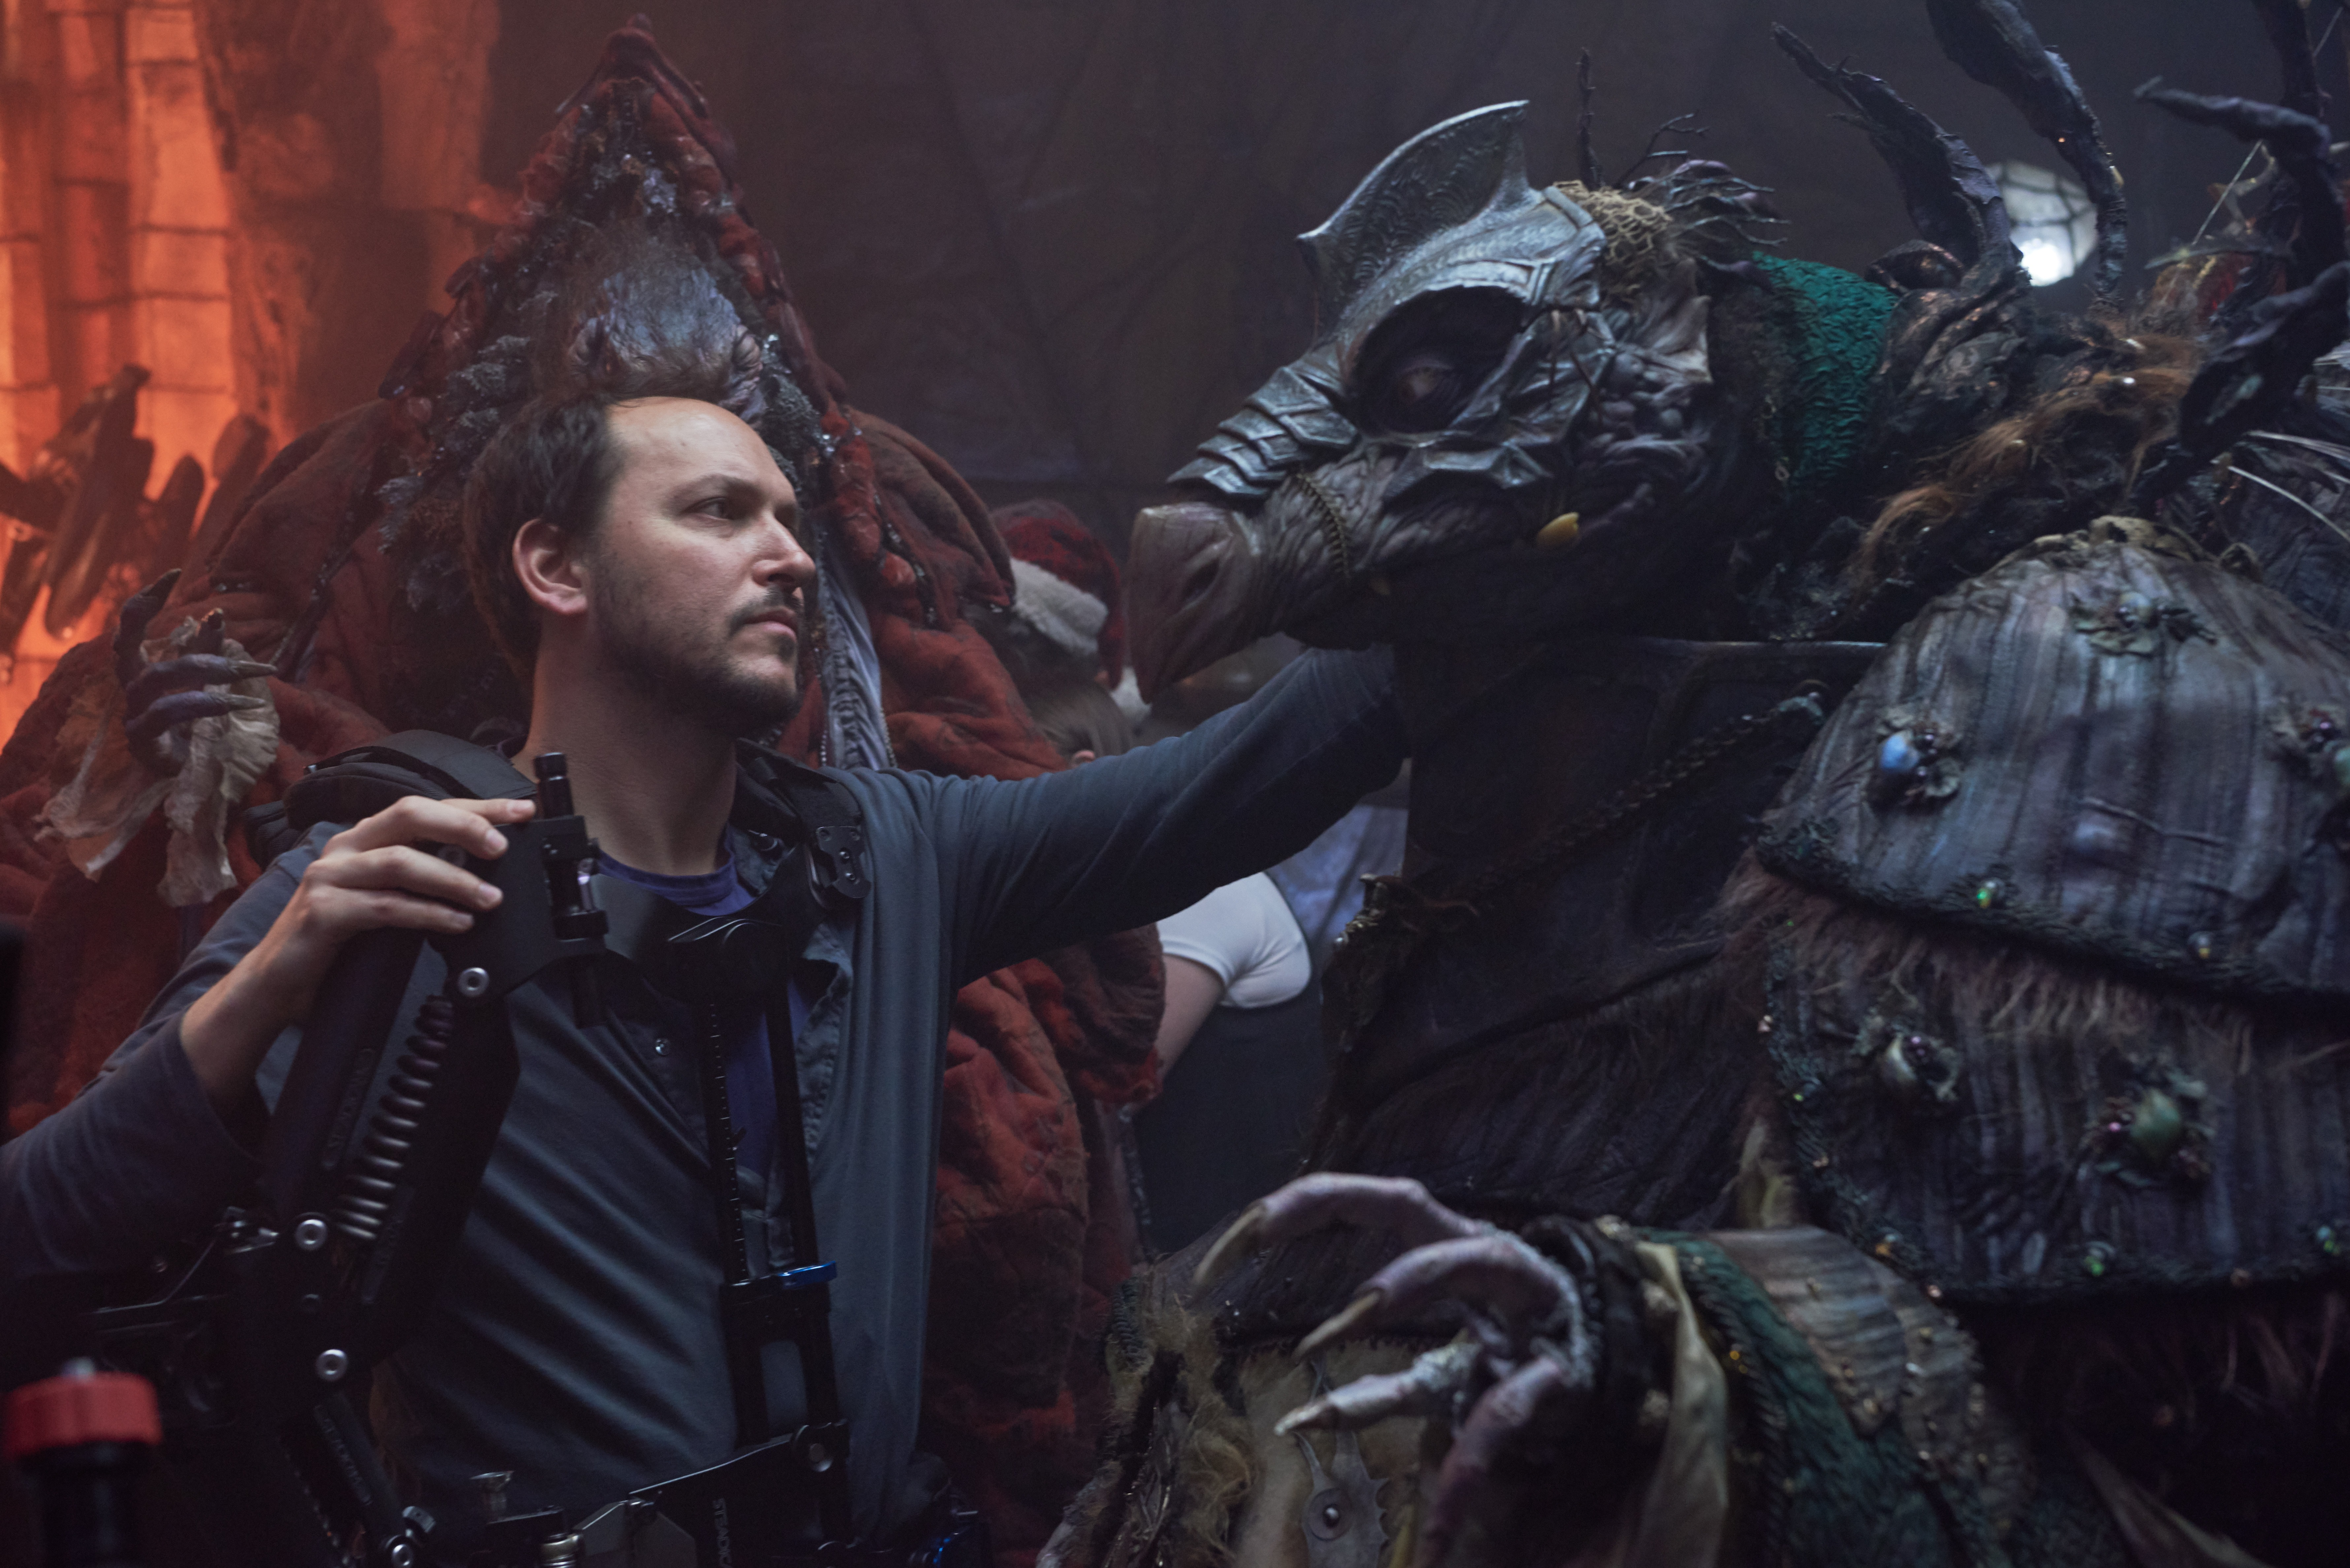 DIRECTOR. Louis Leterrier directed all 10 episodes of 'The Dark Crystal' for Netflix. Photo courtesy of Netflix